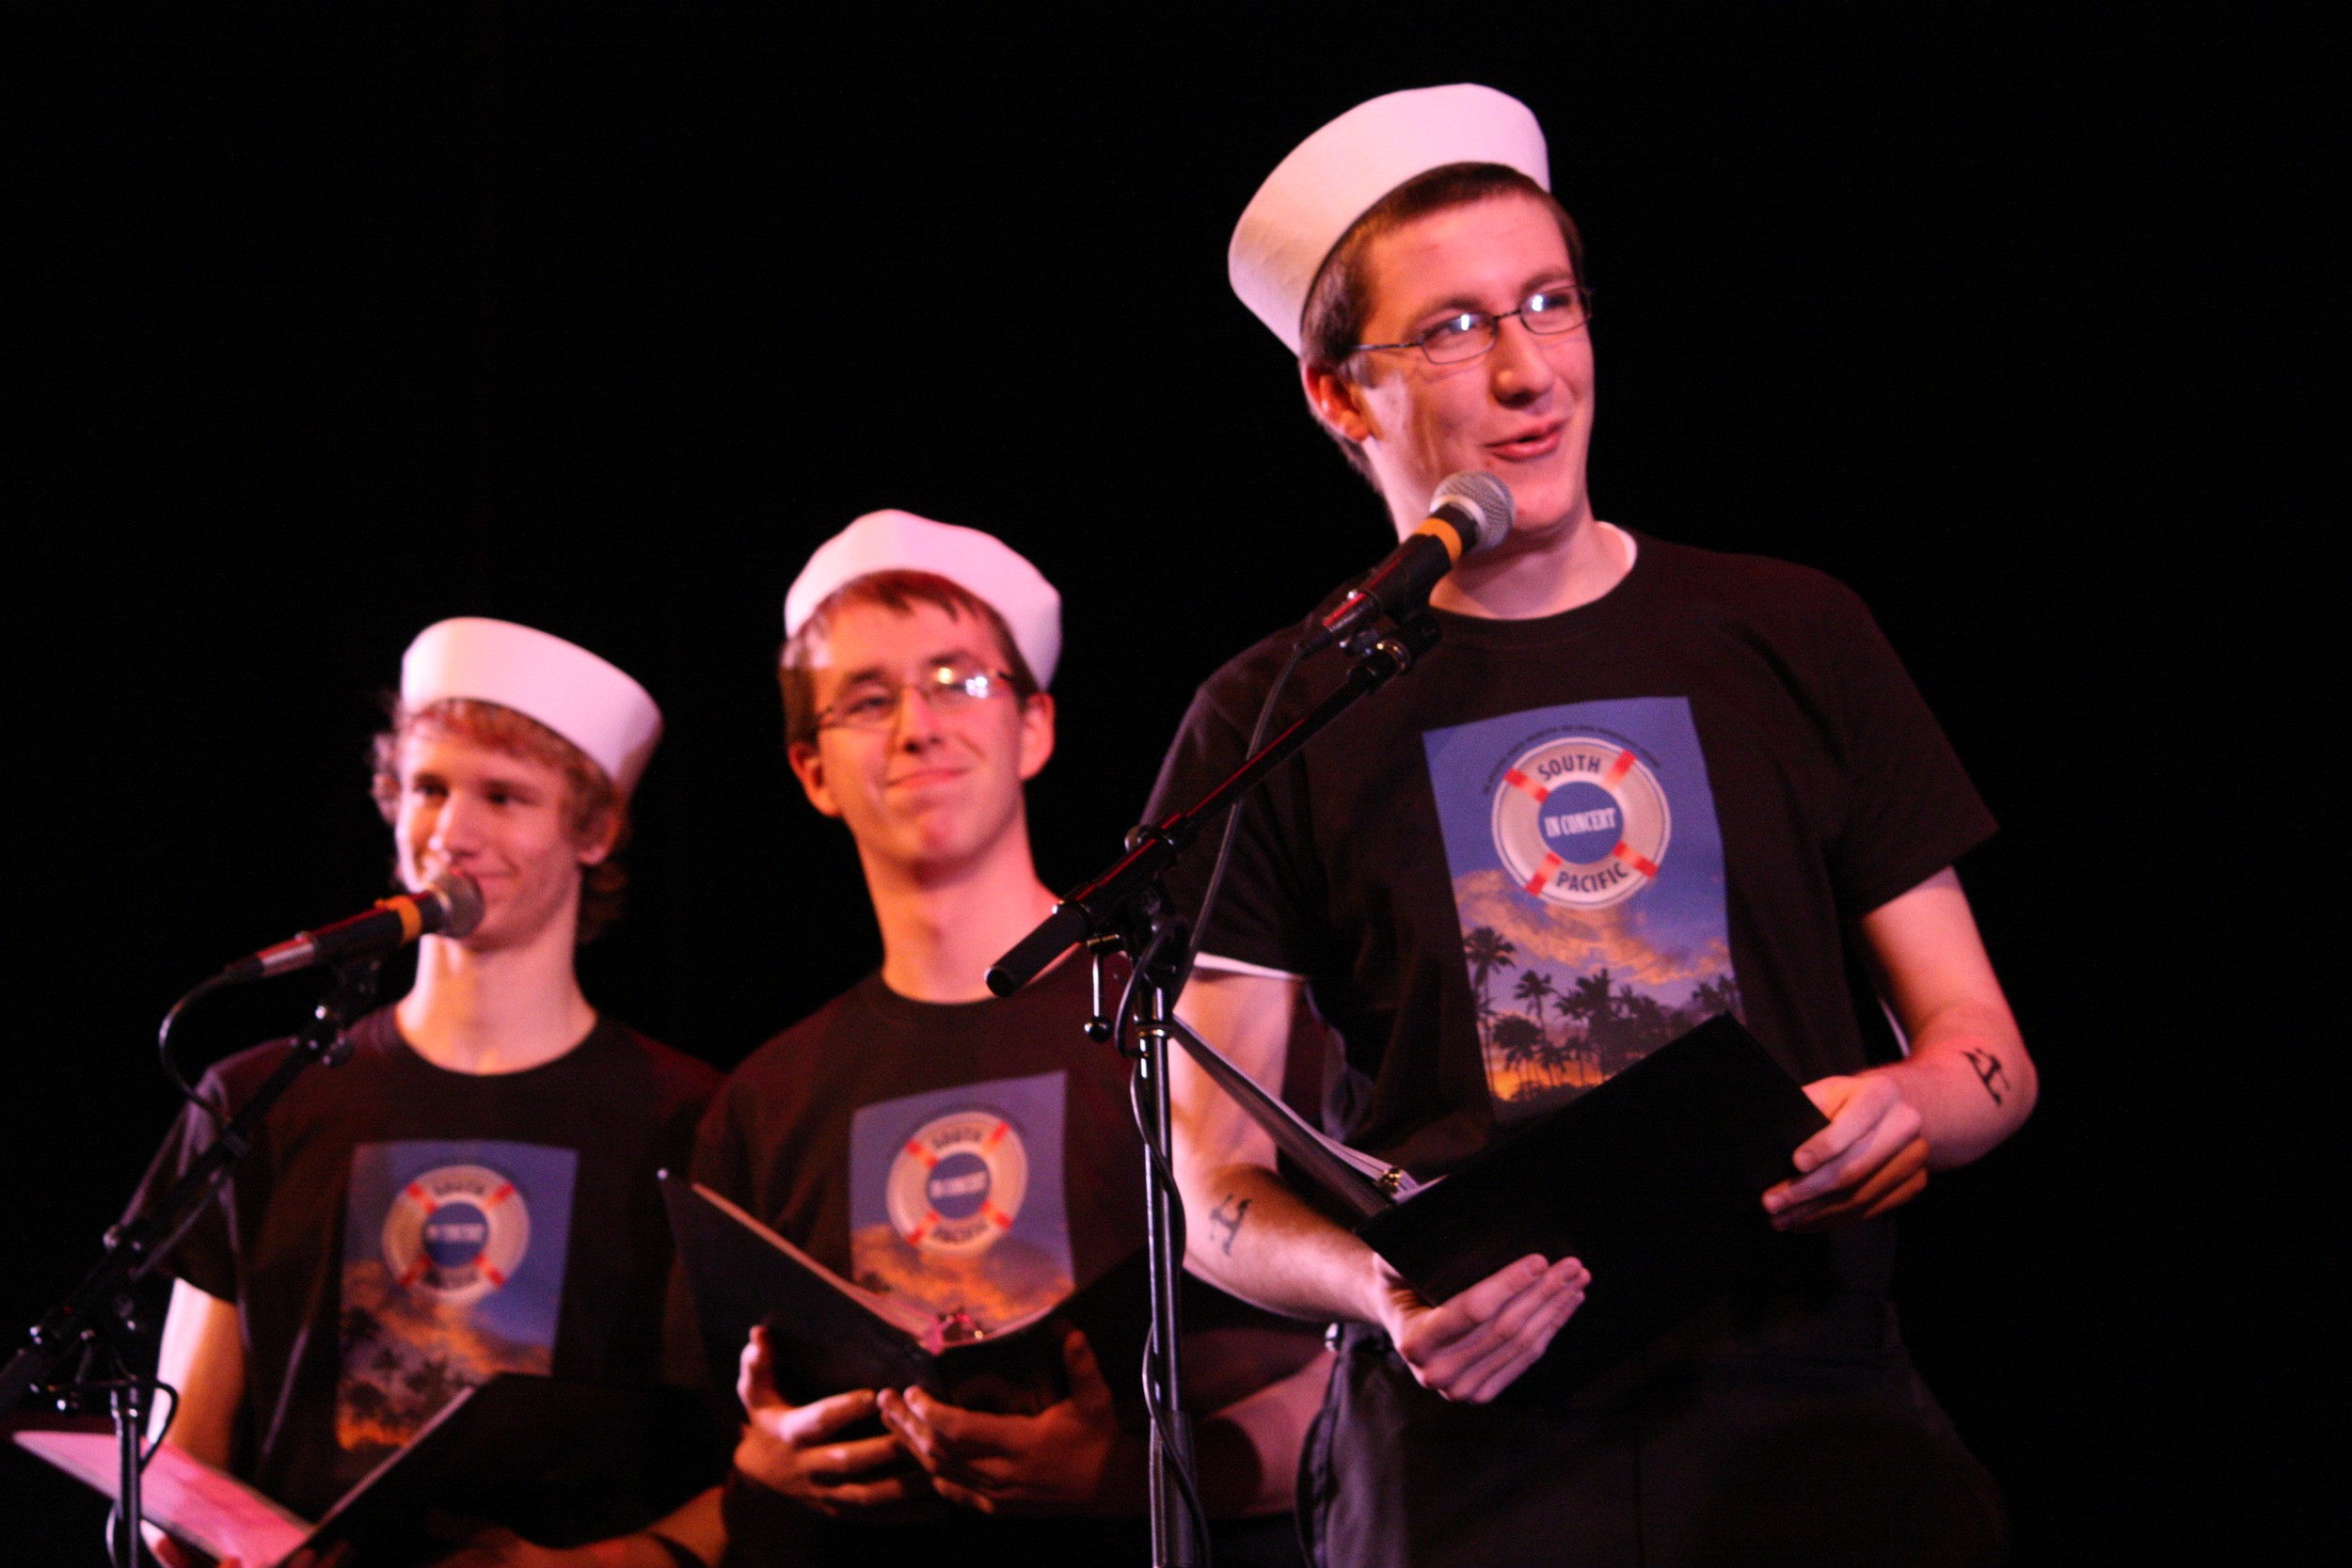 2010 South Pacific in concert 303.jpg